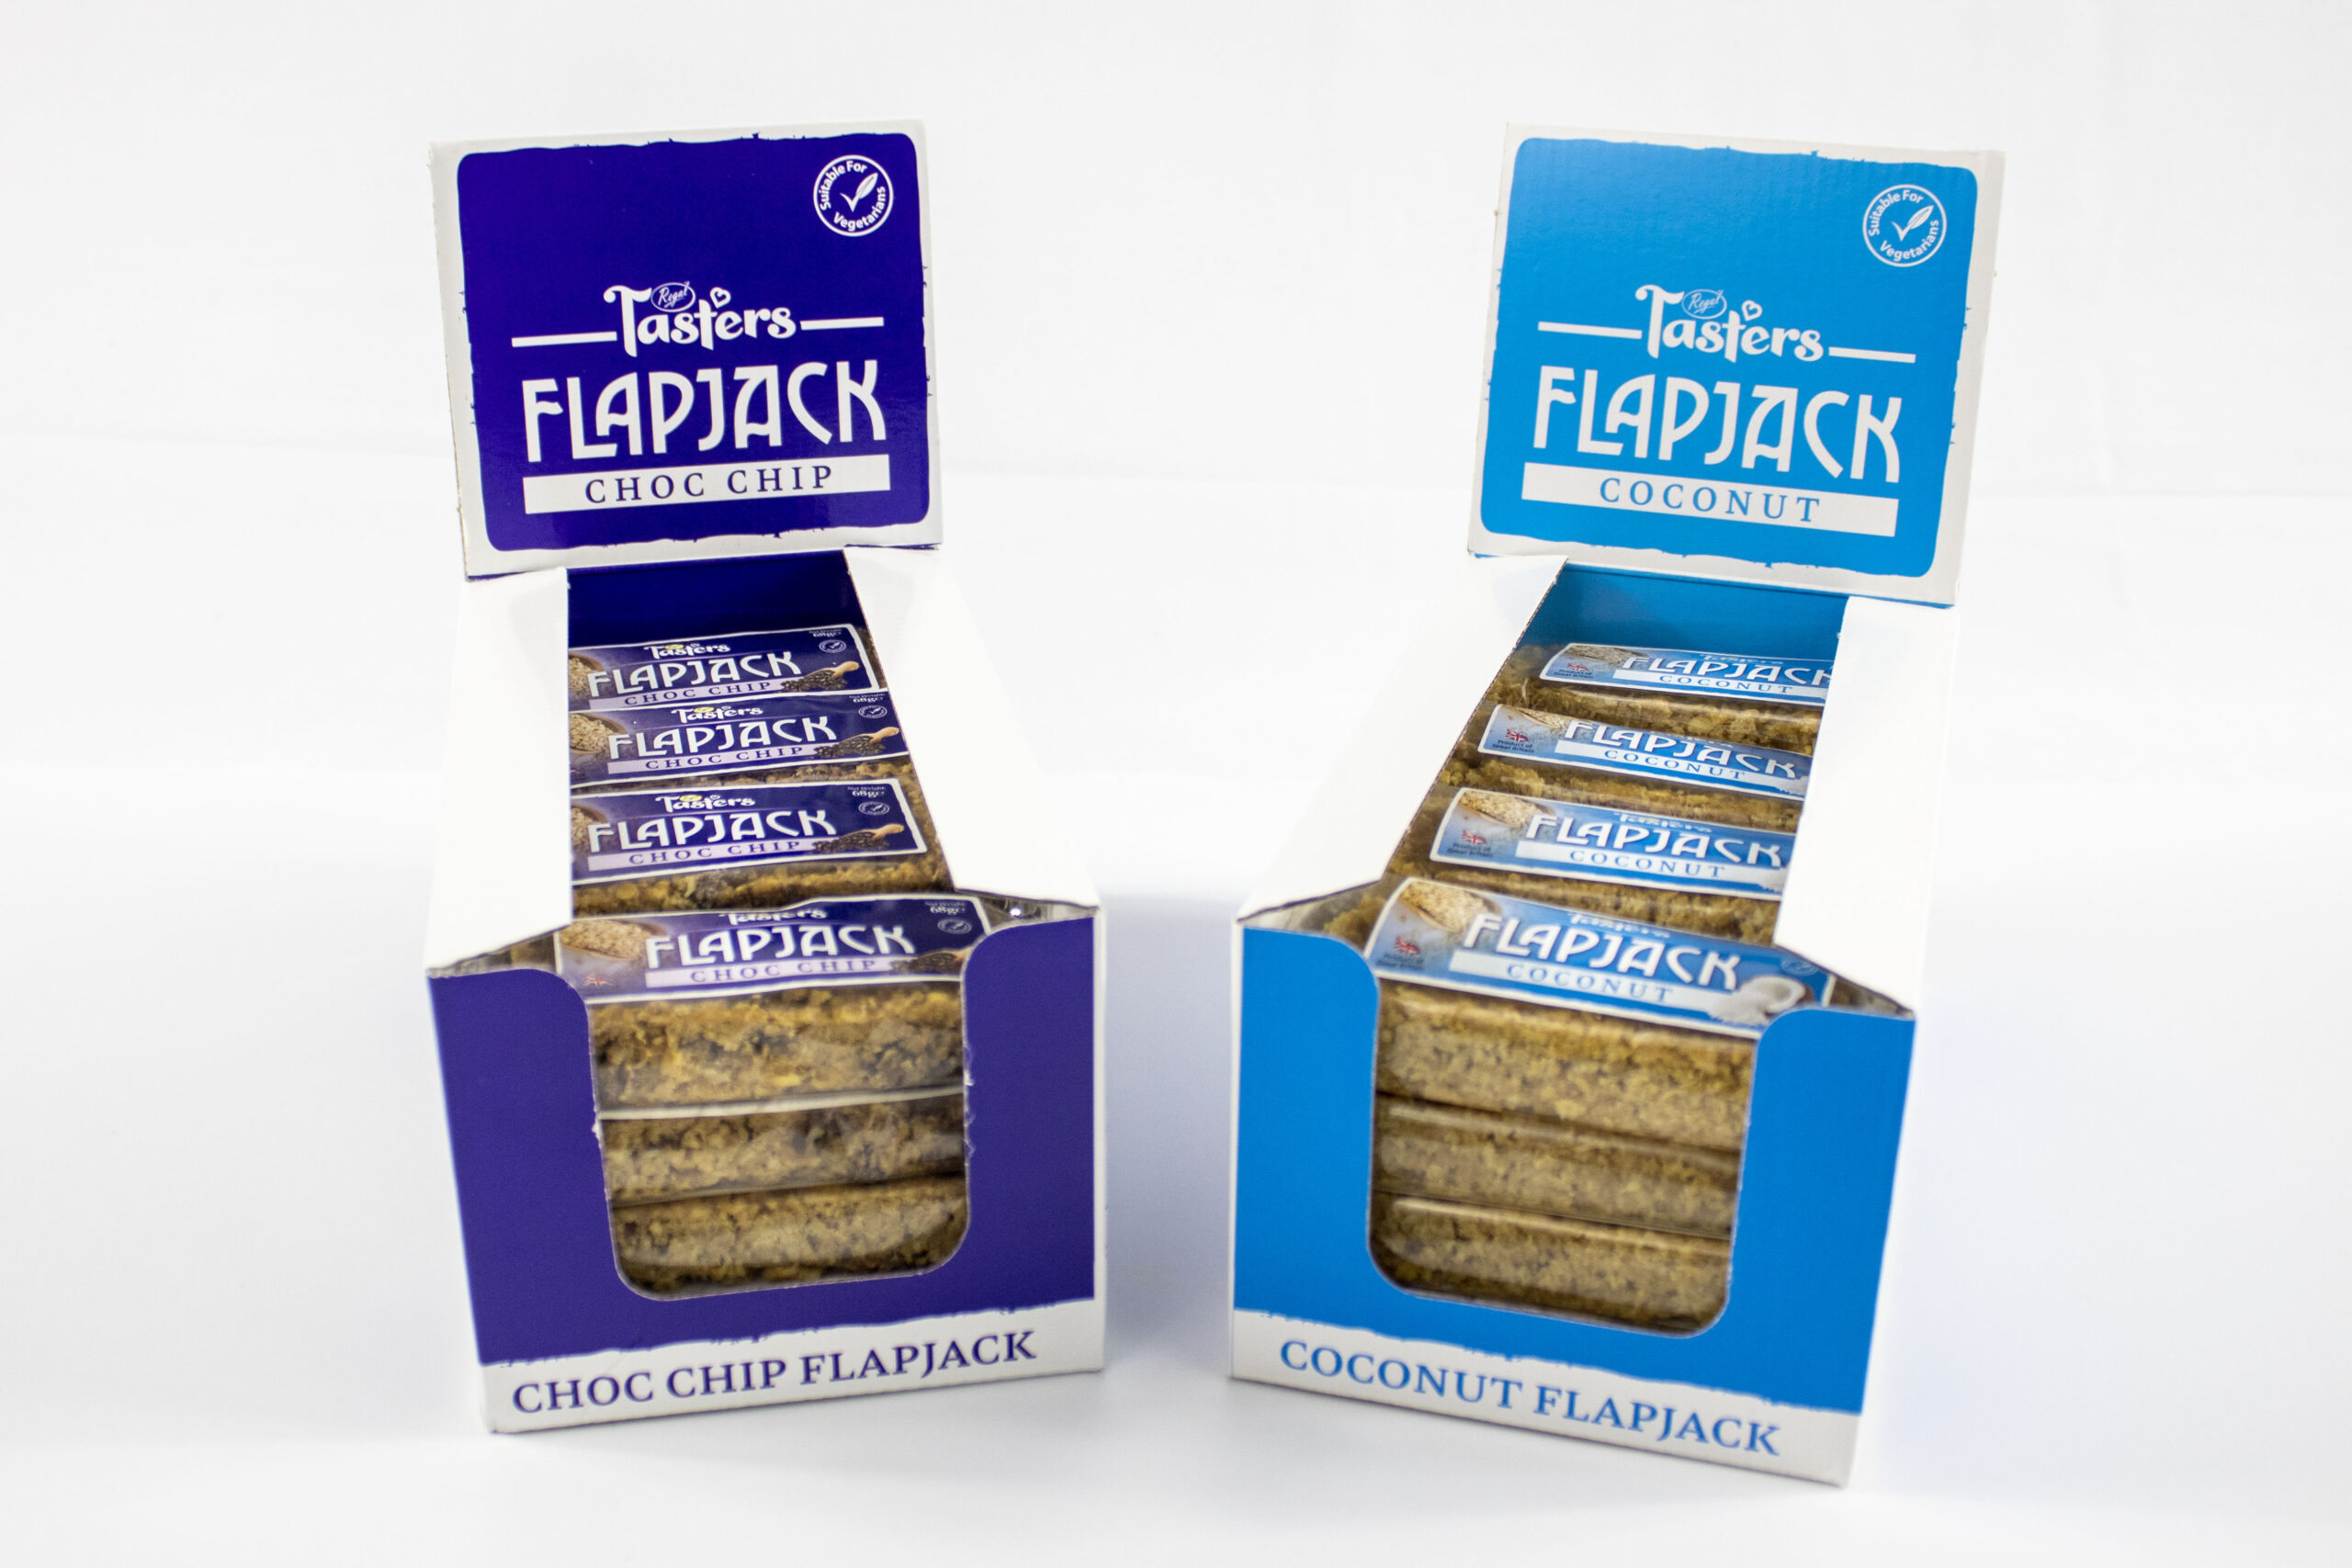 Regal Tasters Launch First Line of Products - Flapjacks